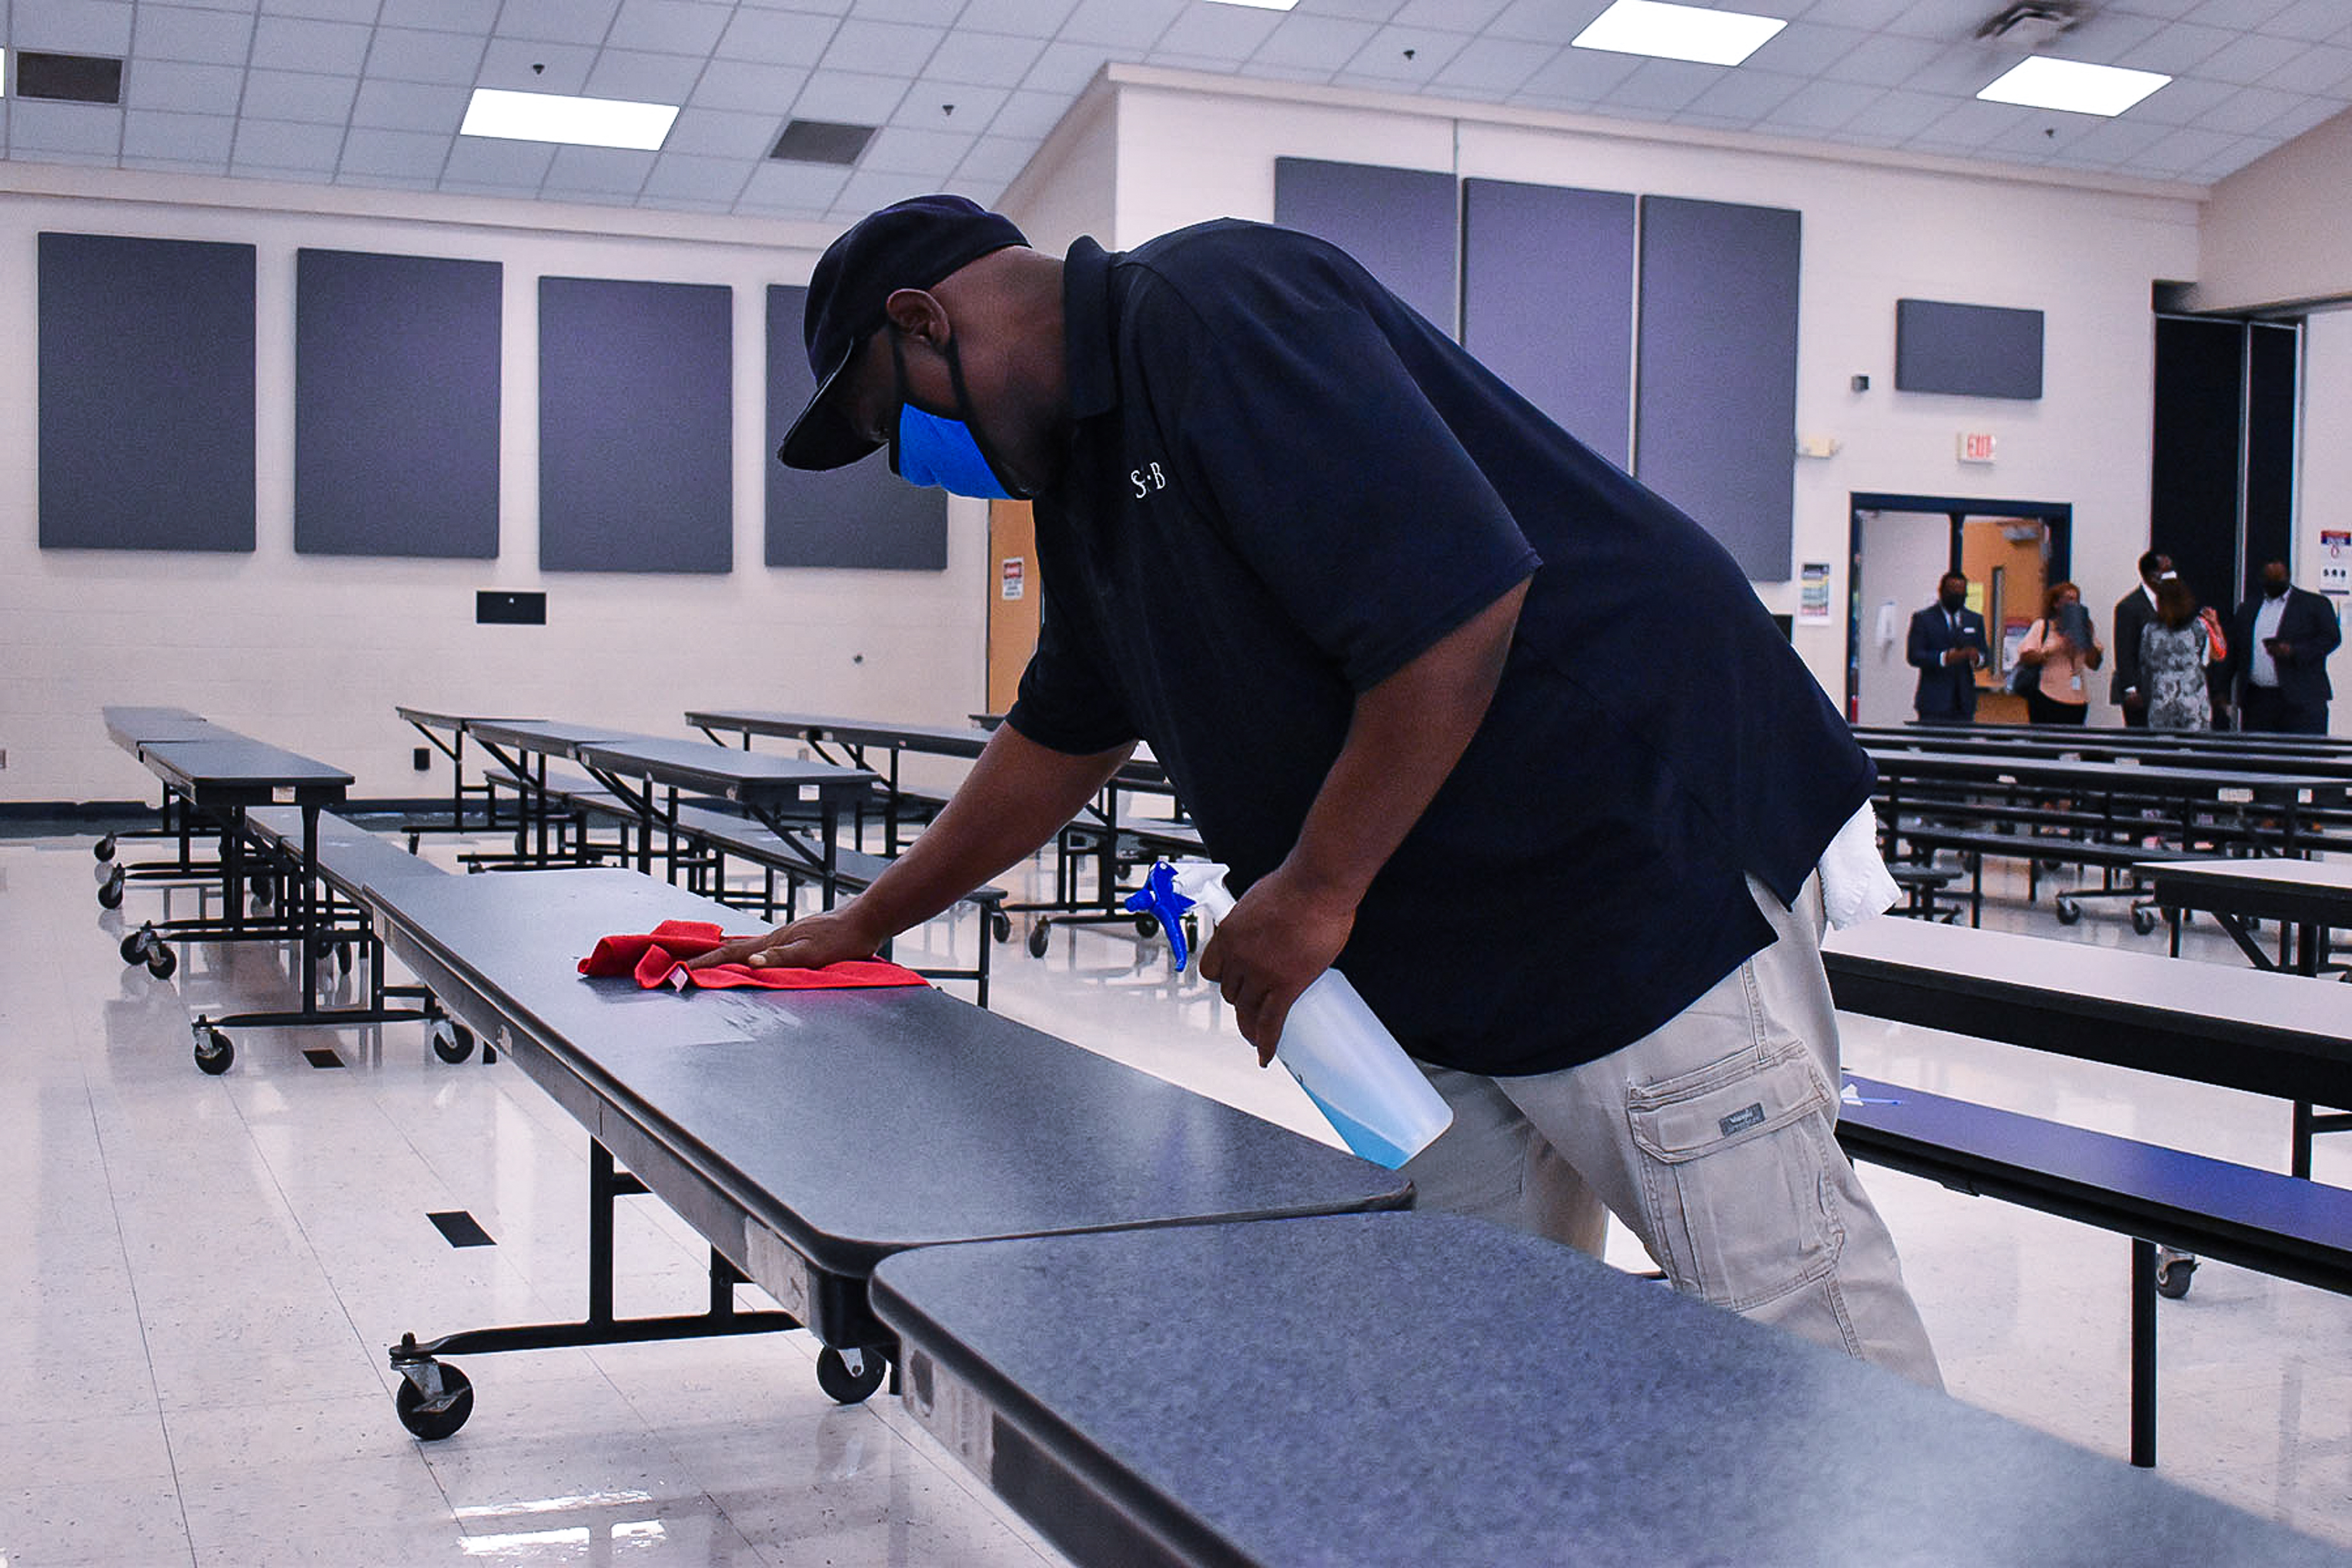 A Shelby County Schools employee sanitizes one of many long cafeteria tables while a group of people stand toward the back of the room.